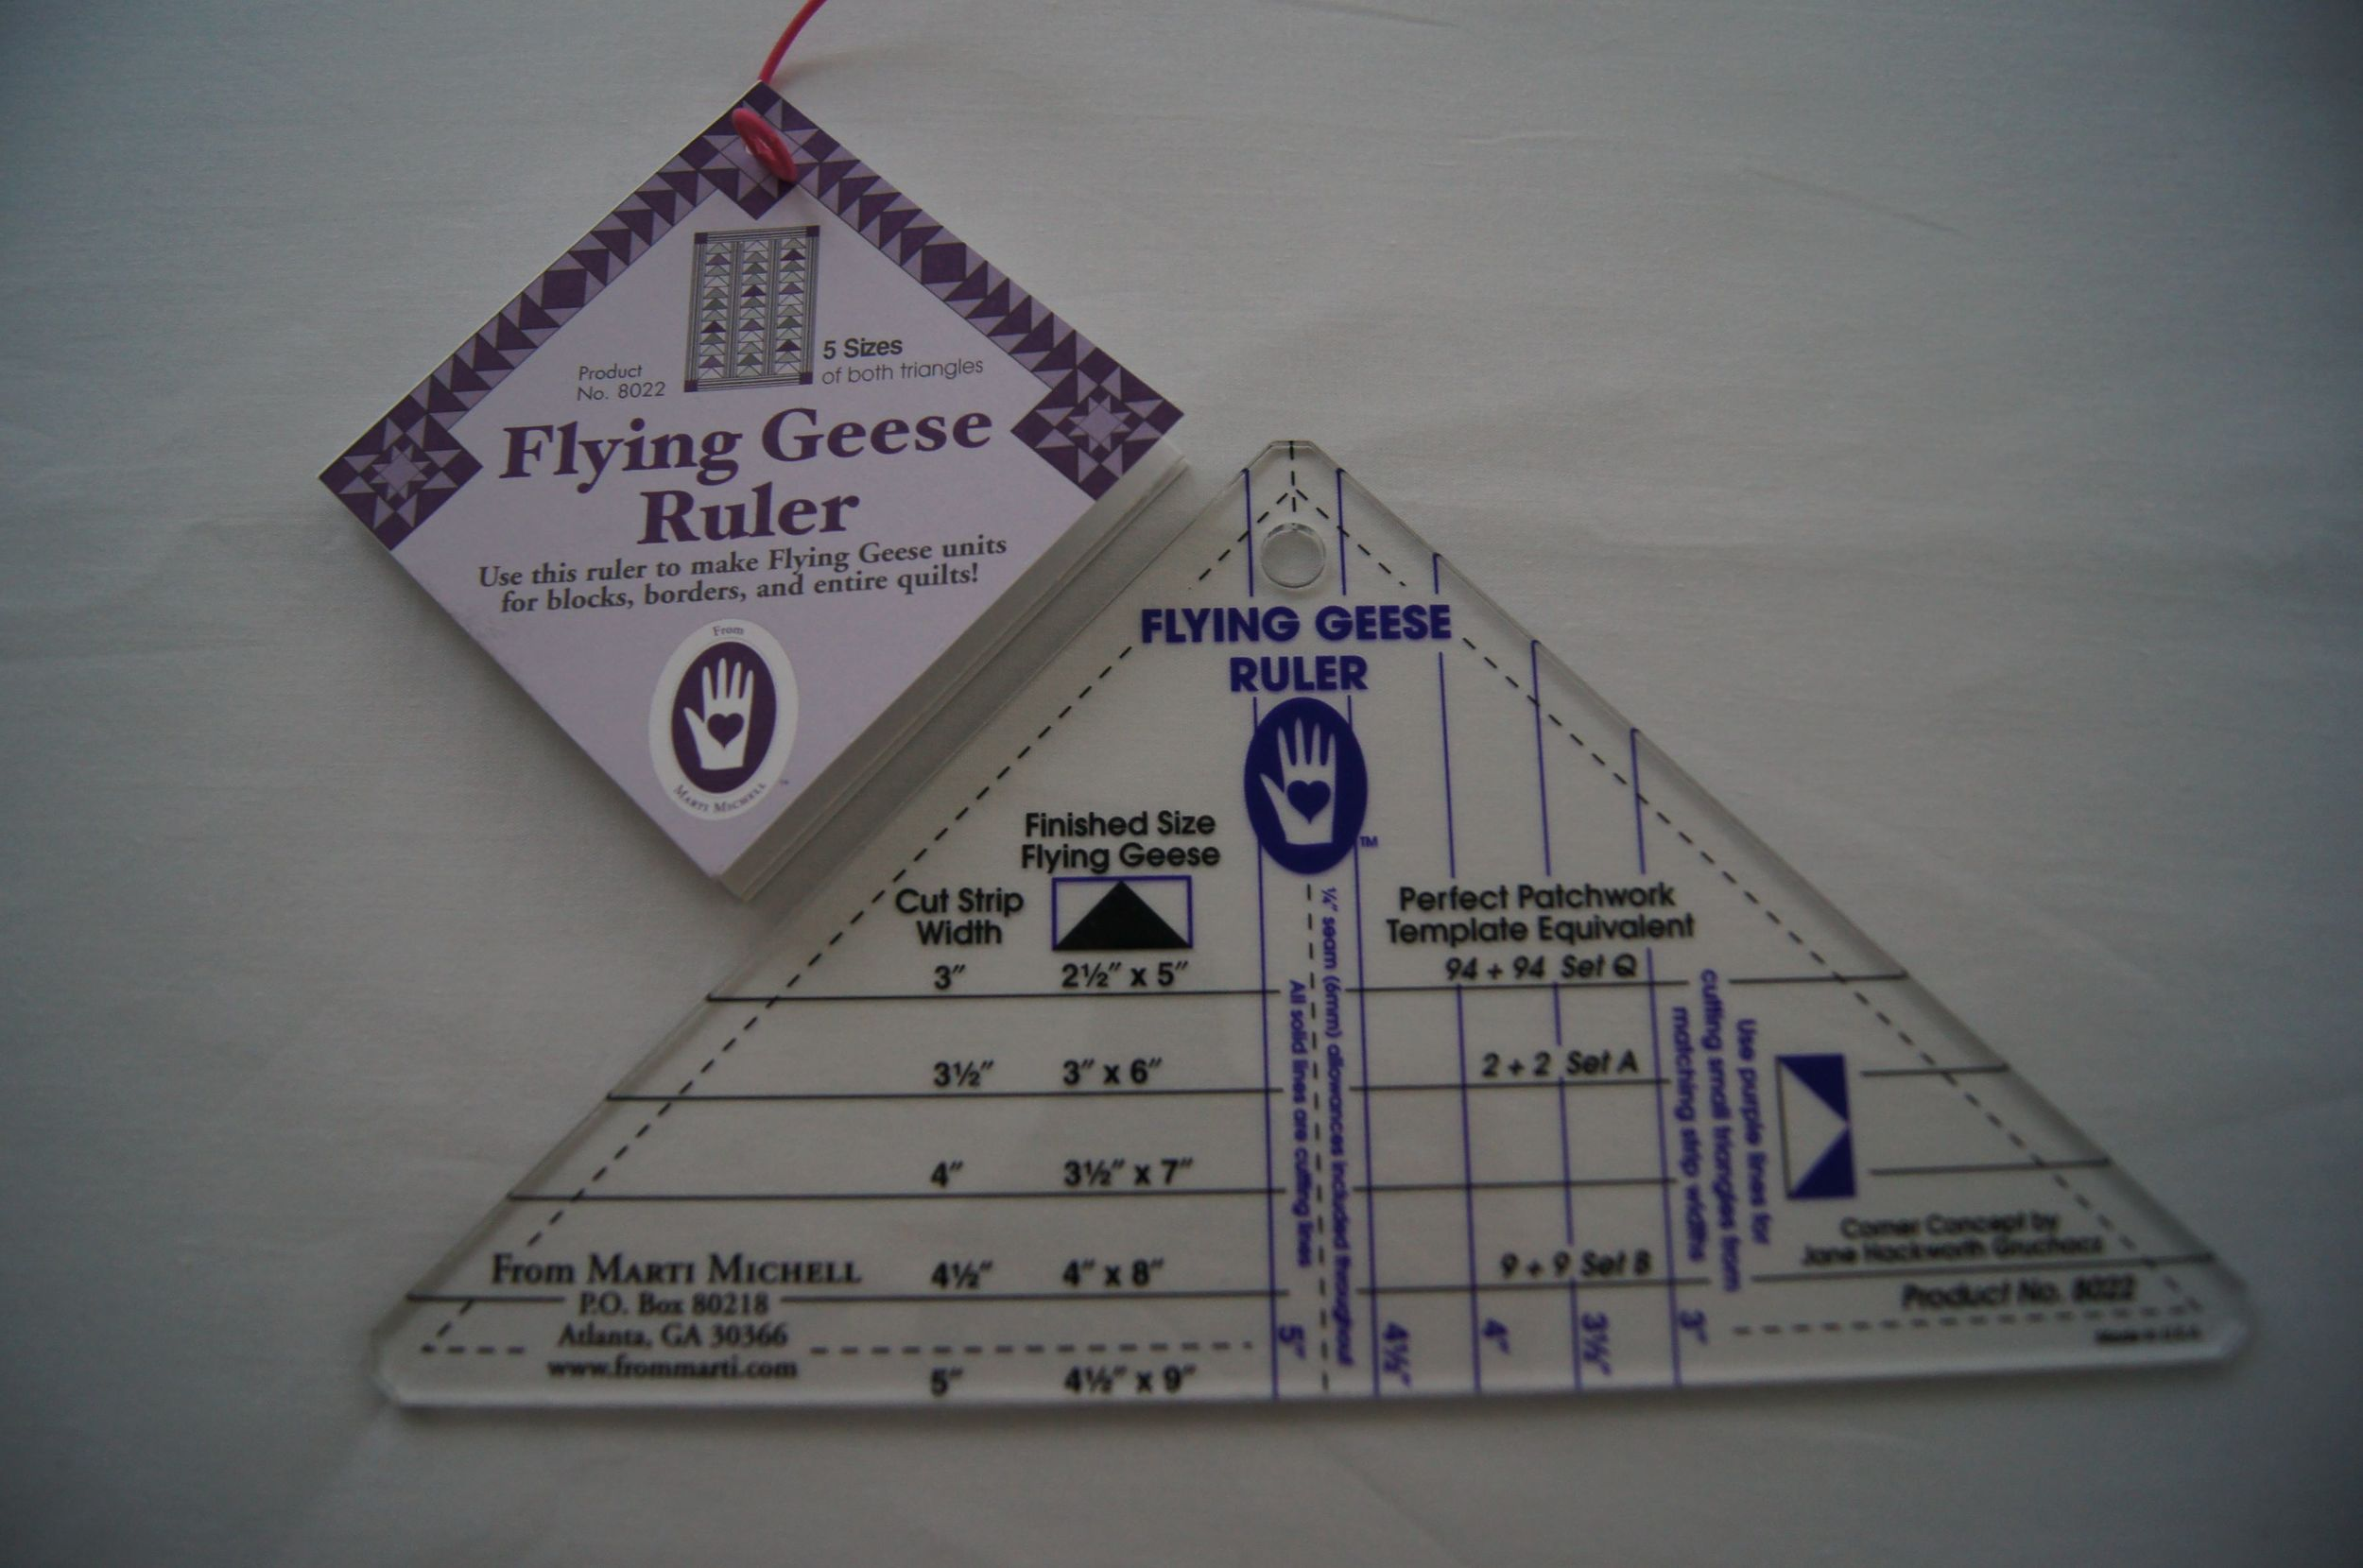 Marti Michell's Flying Geese Ruler